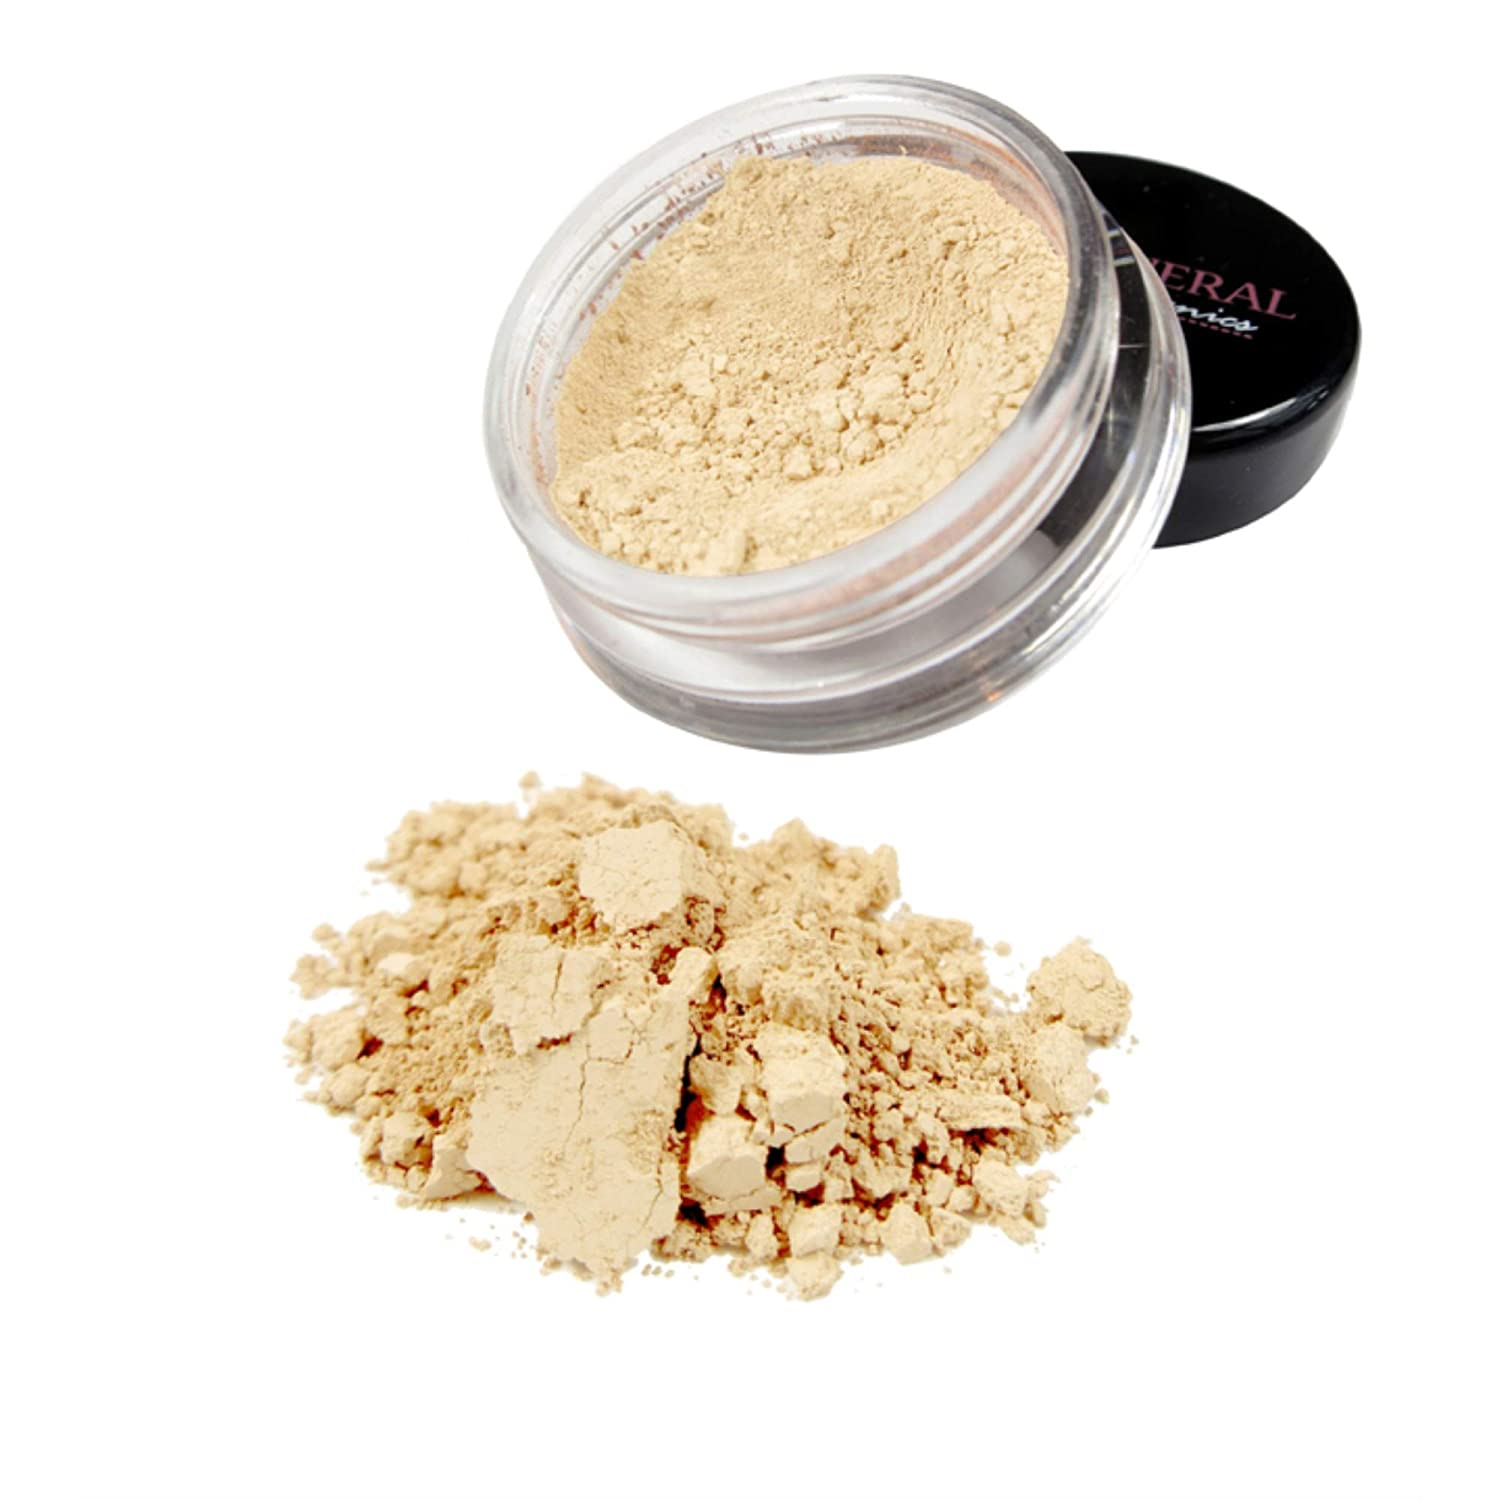 Mineral Hygienics Quality inspection Makeup - Light Golden Foundation Ranking TOP16